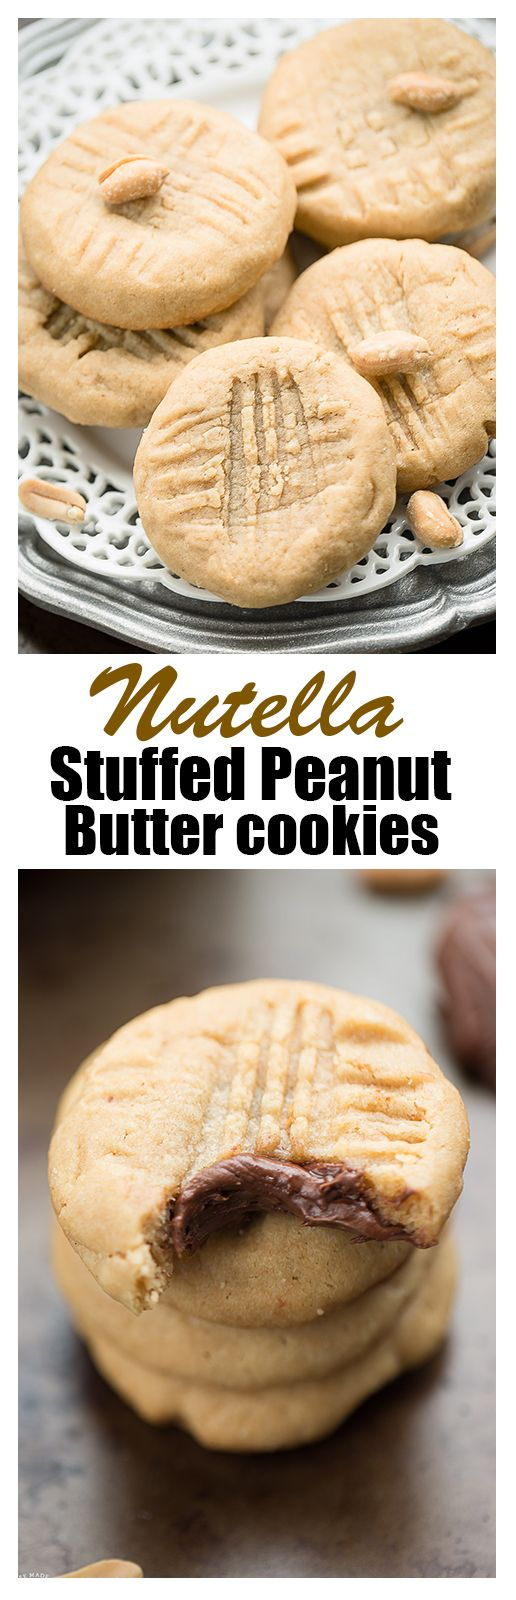 Nutella Stuffed Peanut Butter Cookies Make The Perfect Treat